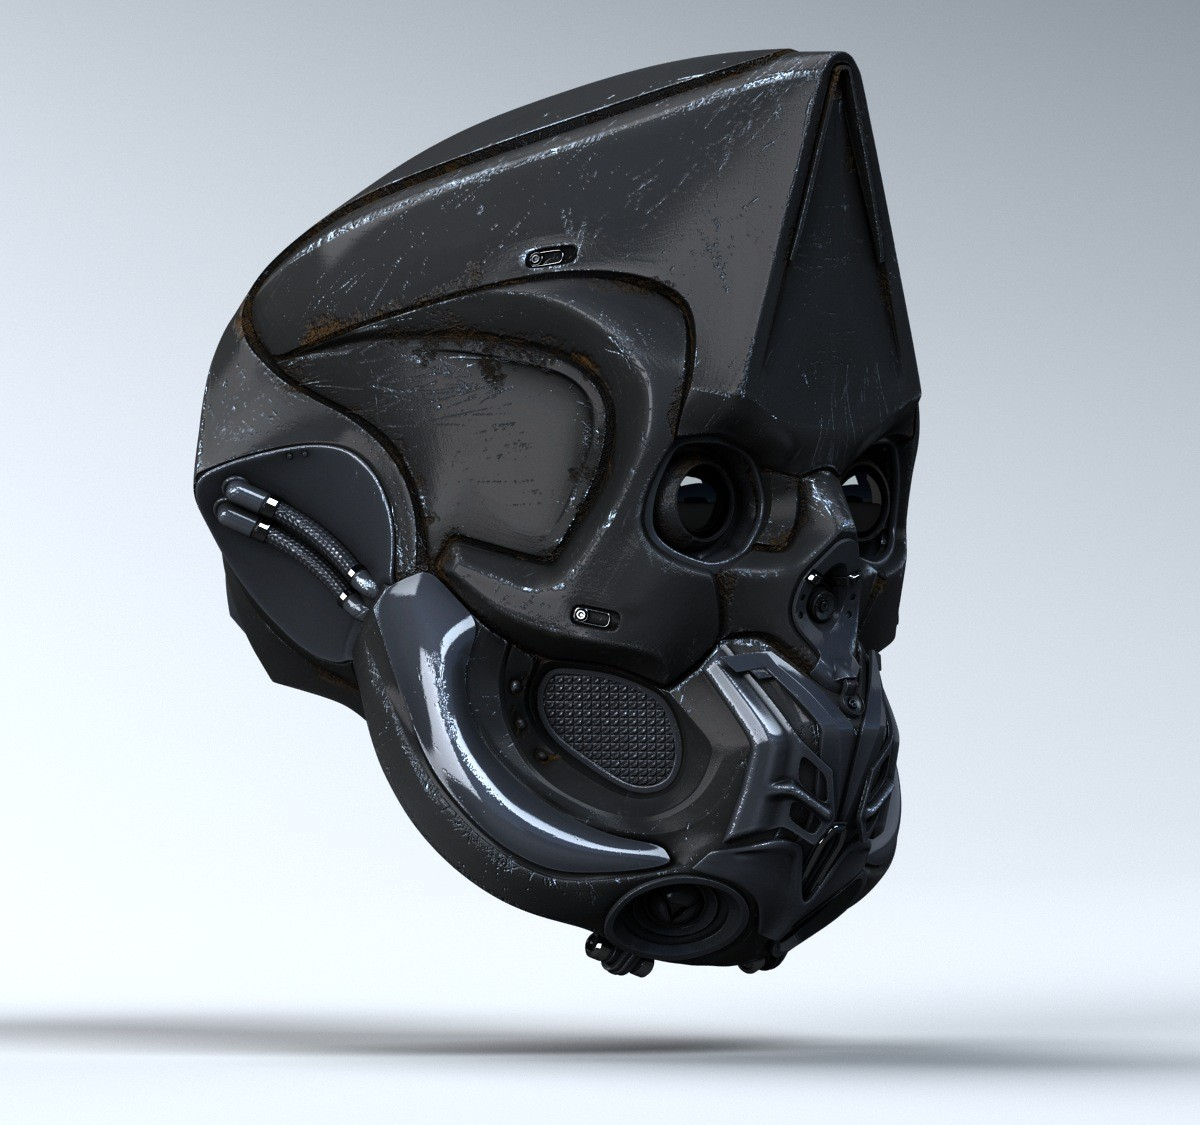 obj - sci fi helmet animation